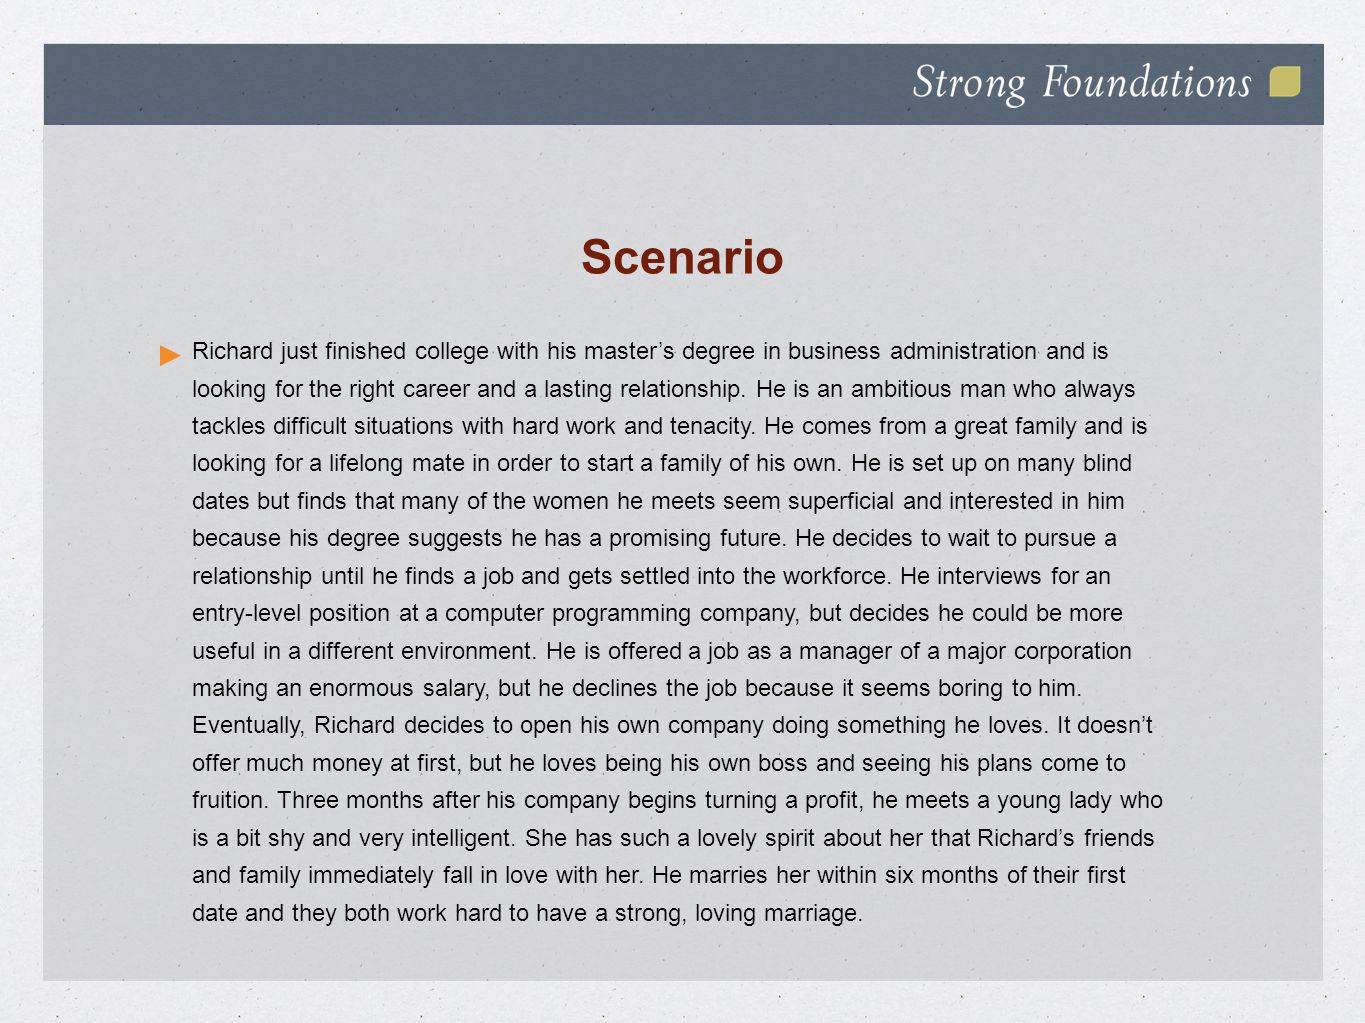 Scenario Richard just finished college with his master's degree in business administration and is looking for the right career and a lasting relationship.